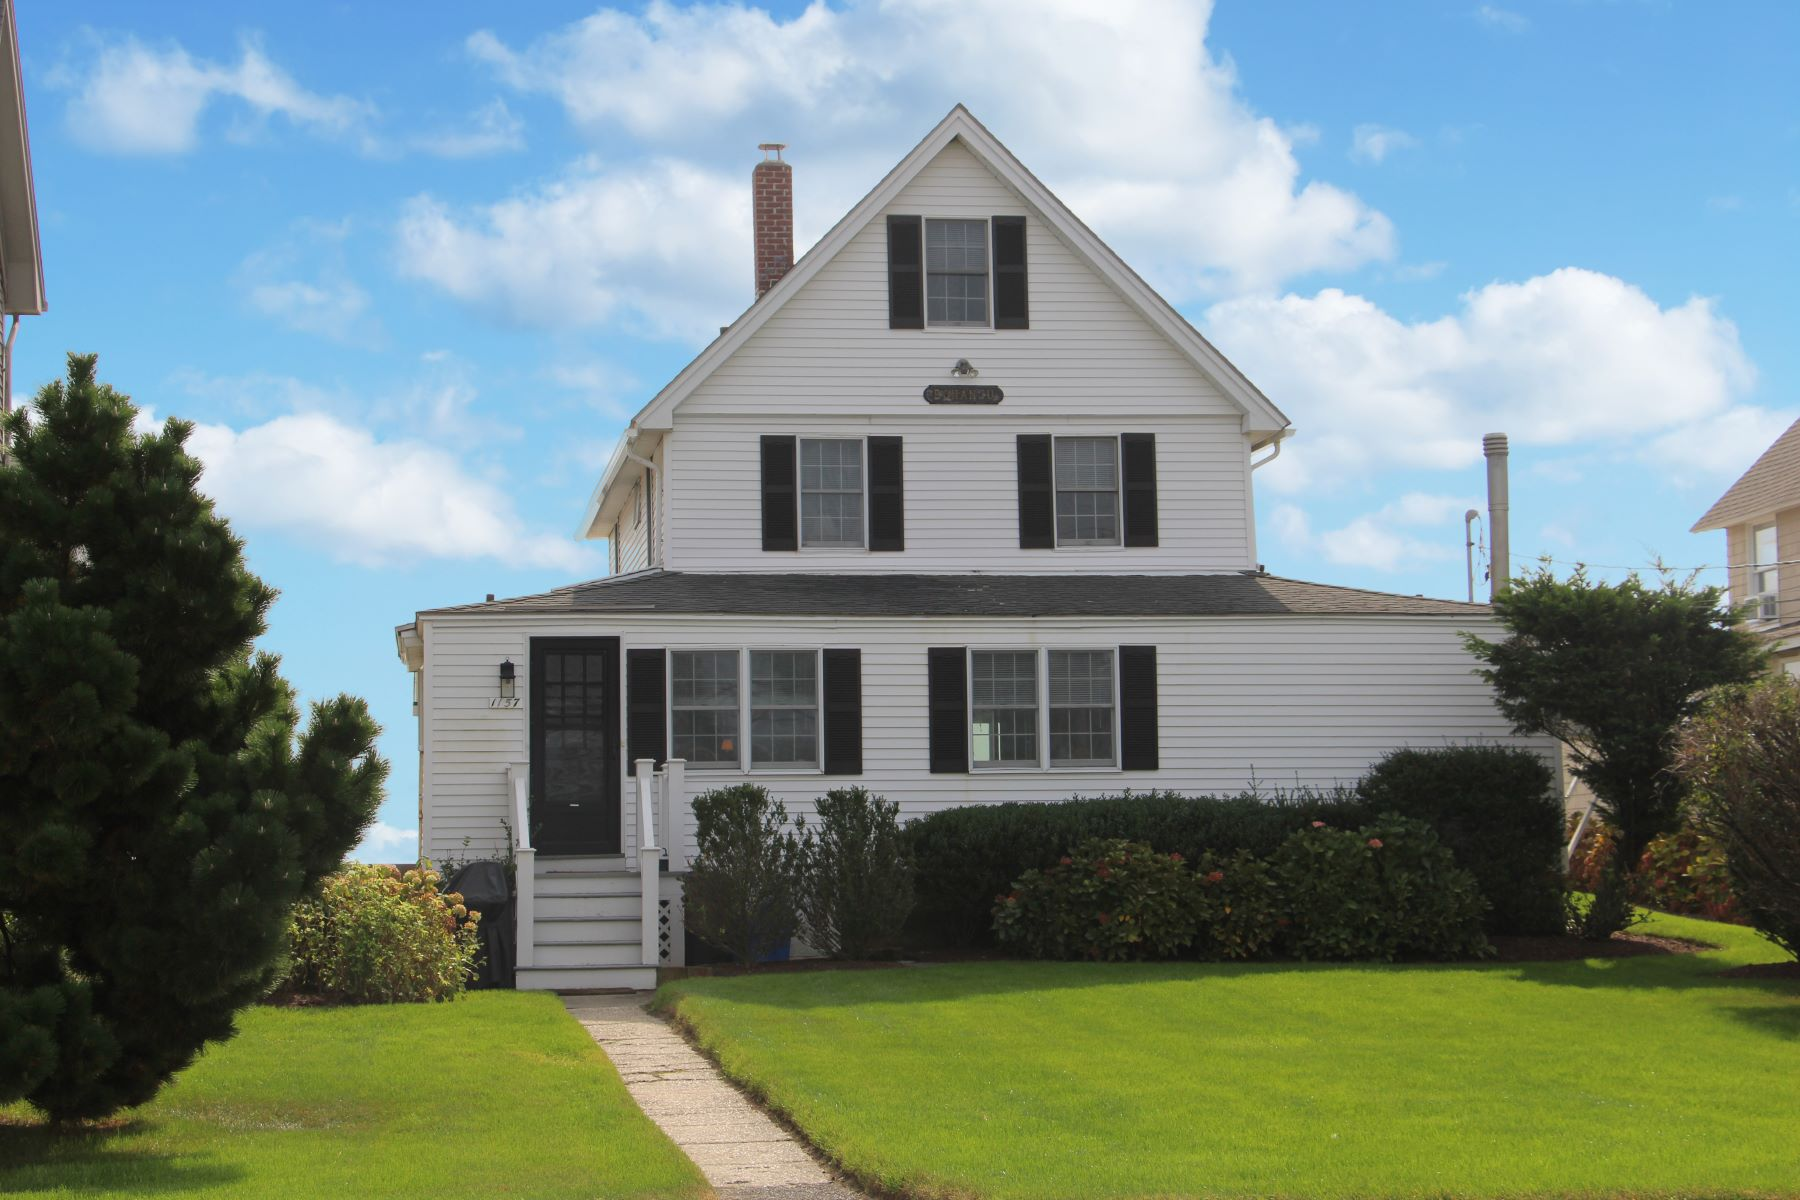 Single Family Home for Sale at 1157 Fairfield Beach Road 1157 Fairfield Beach Road Fairfield, Connecticut 06824 United States